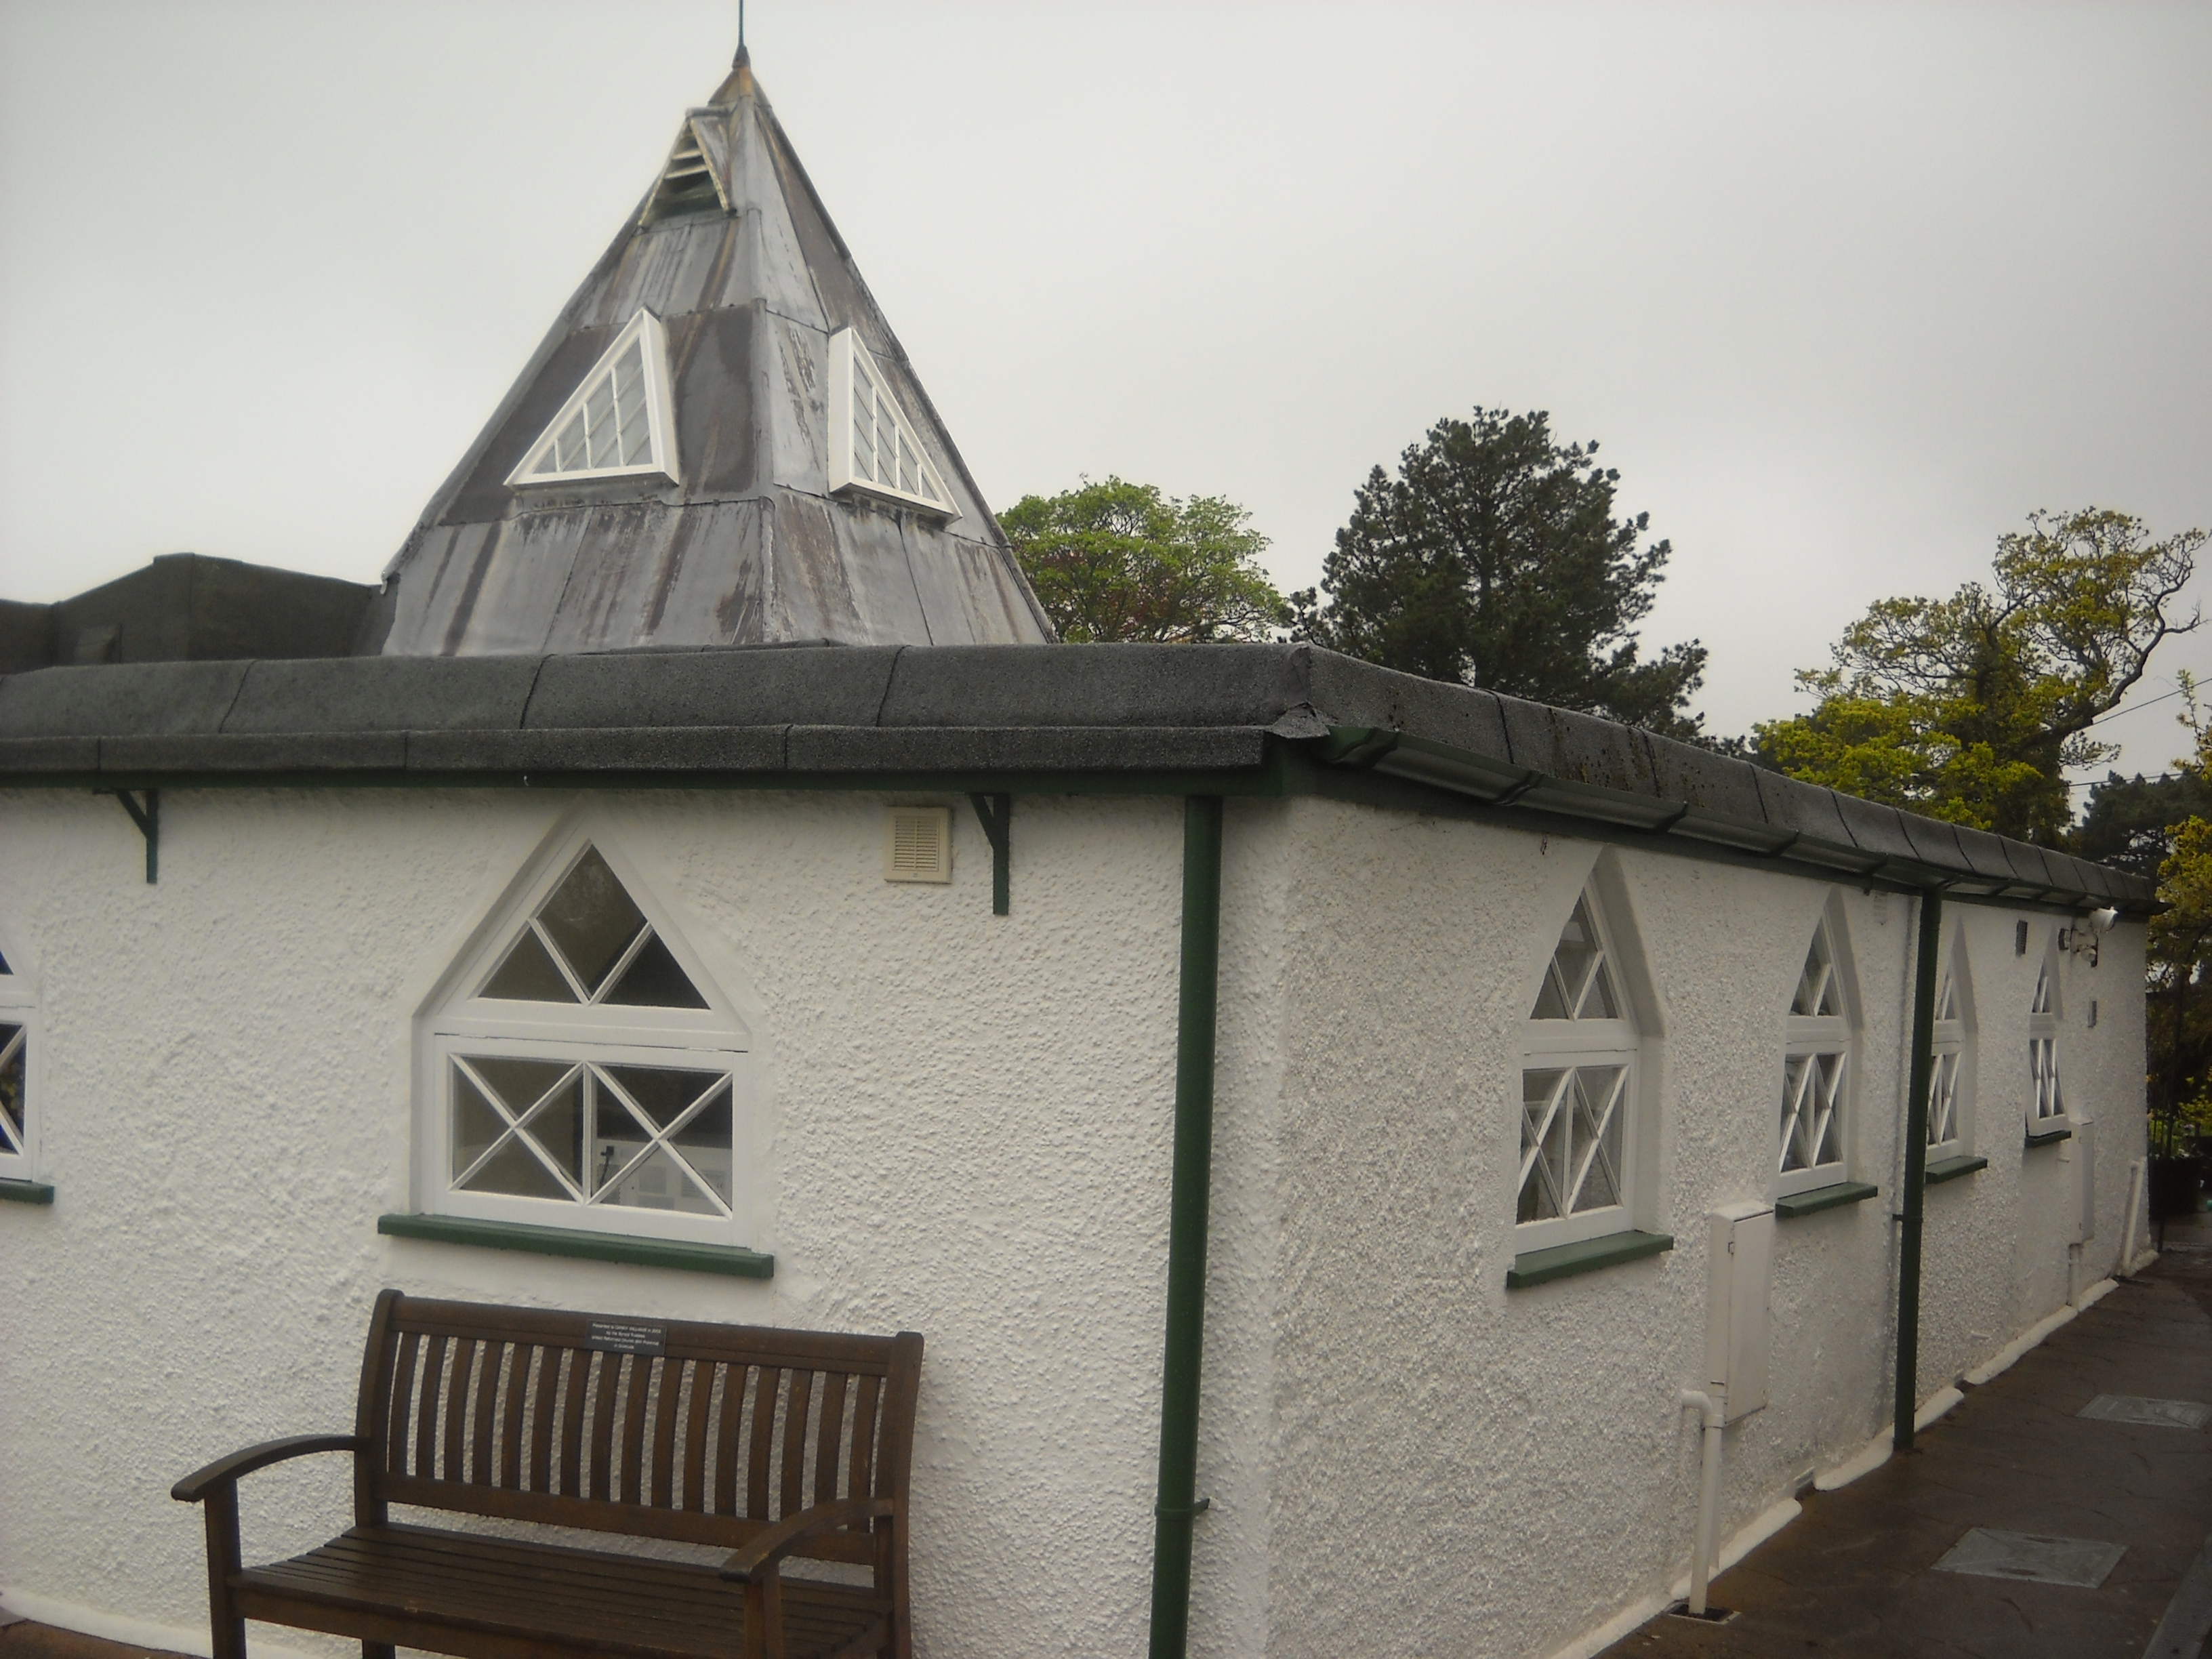 The Chapel built for the Parminters just up the road.